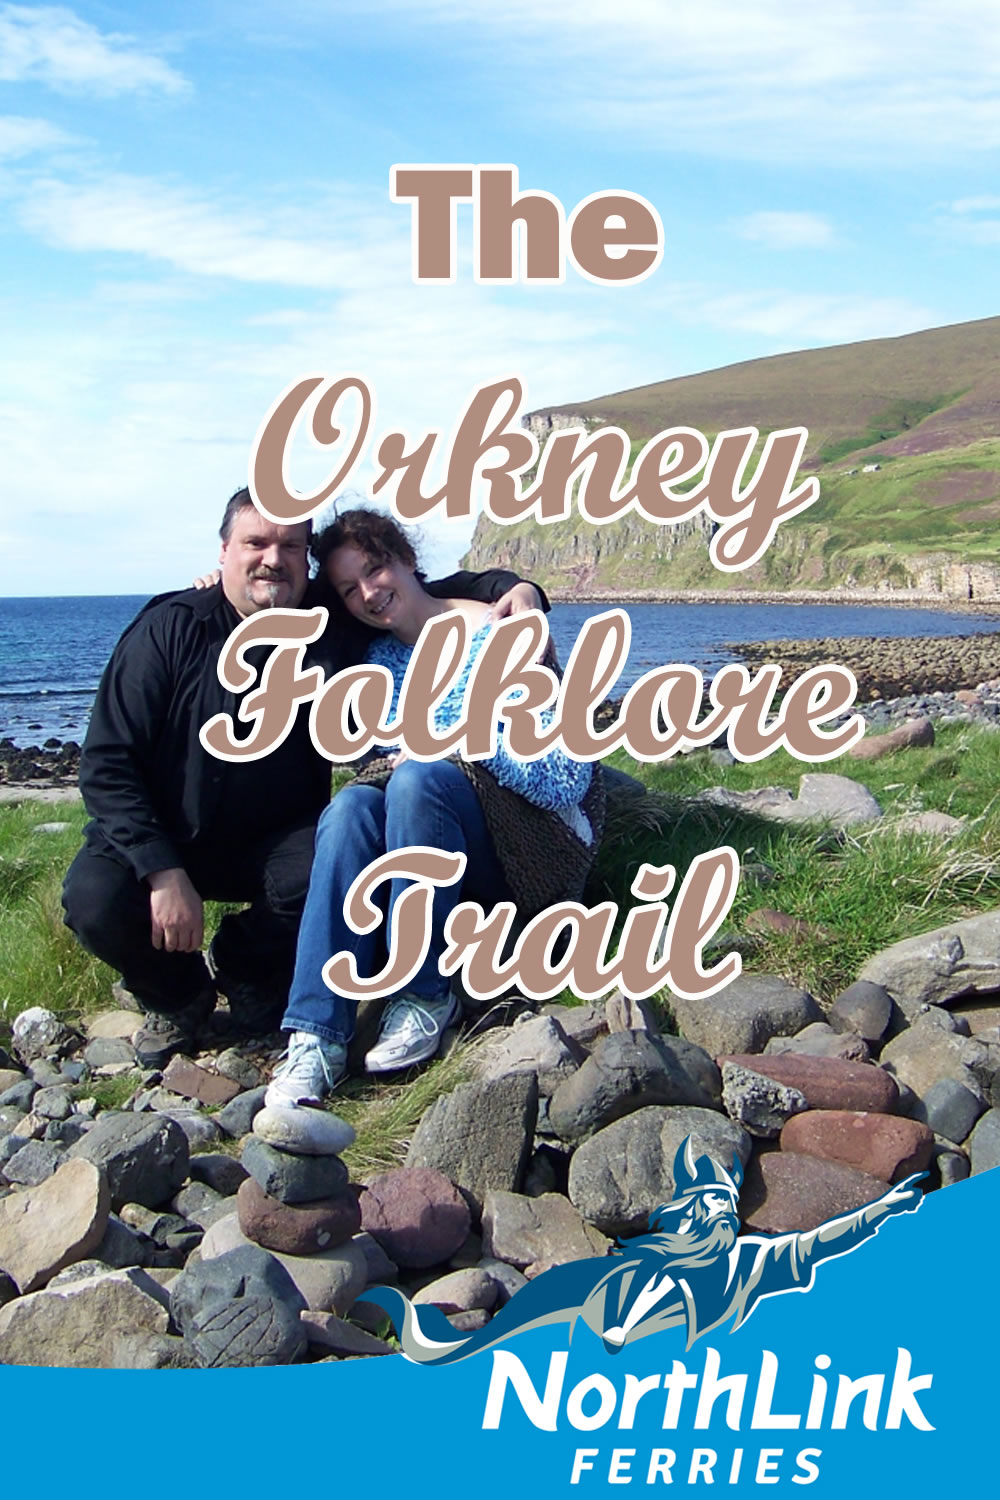 The Orkney Folklore Trail